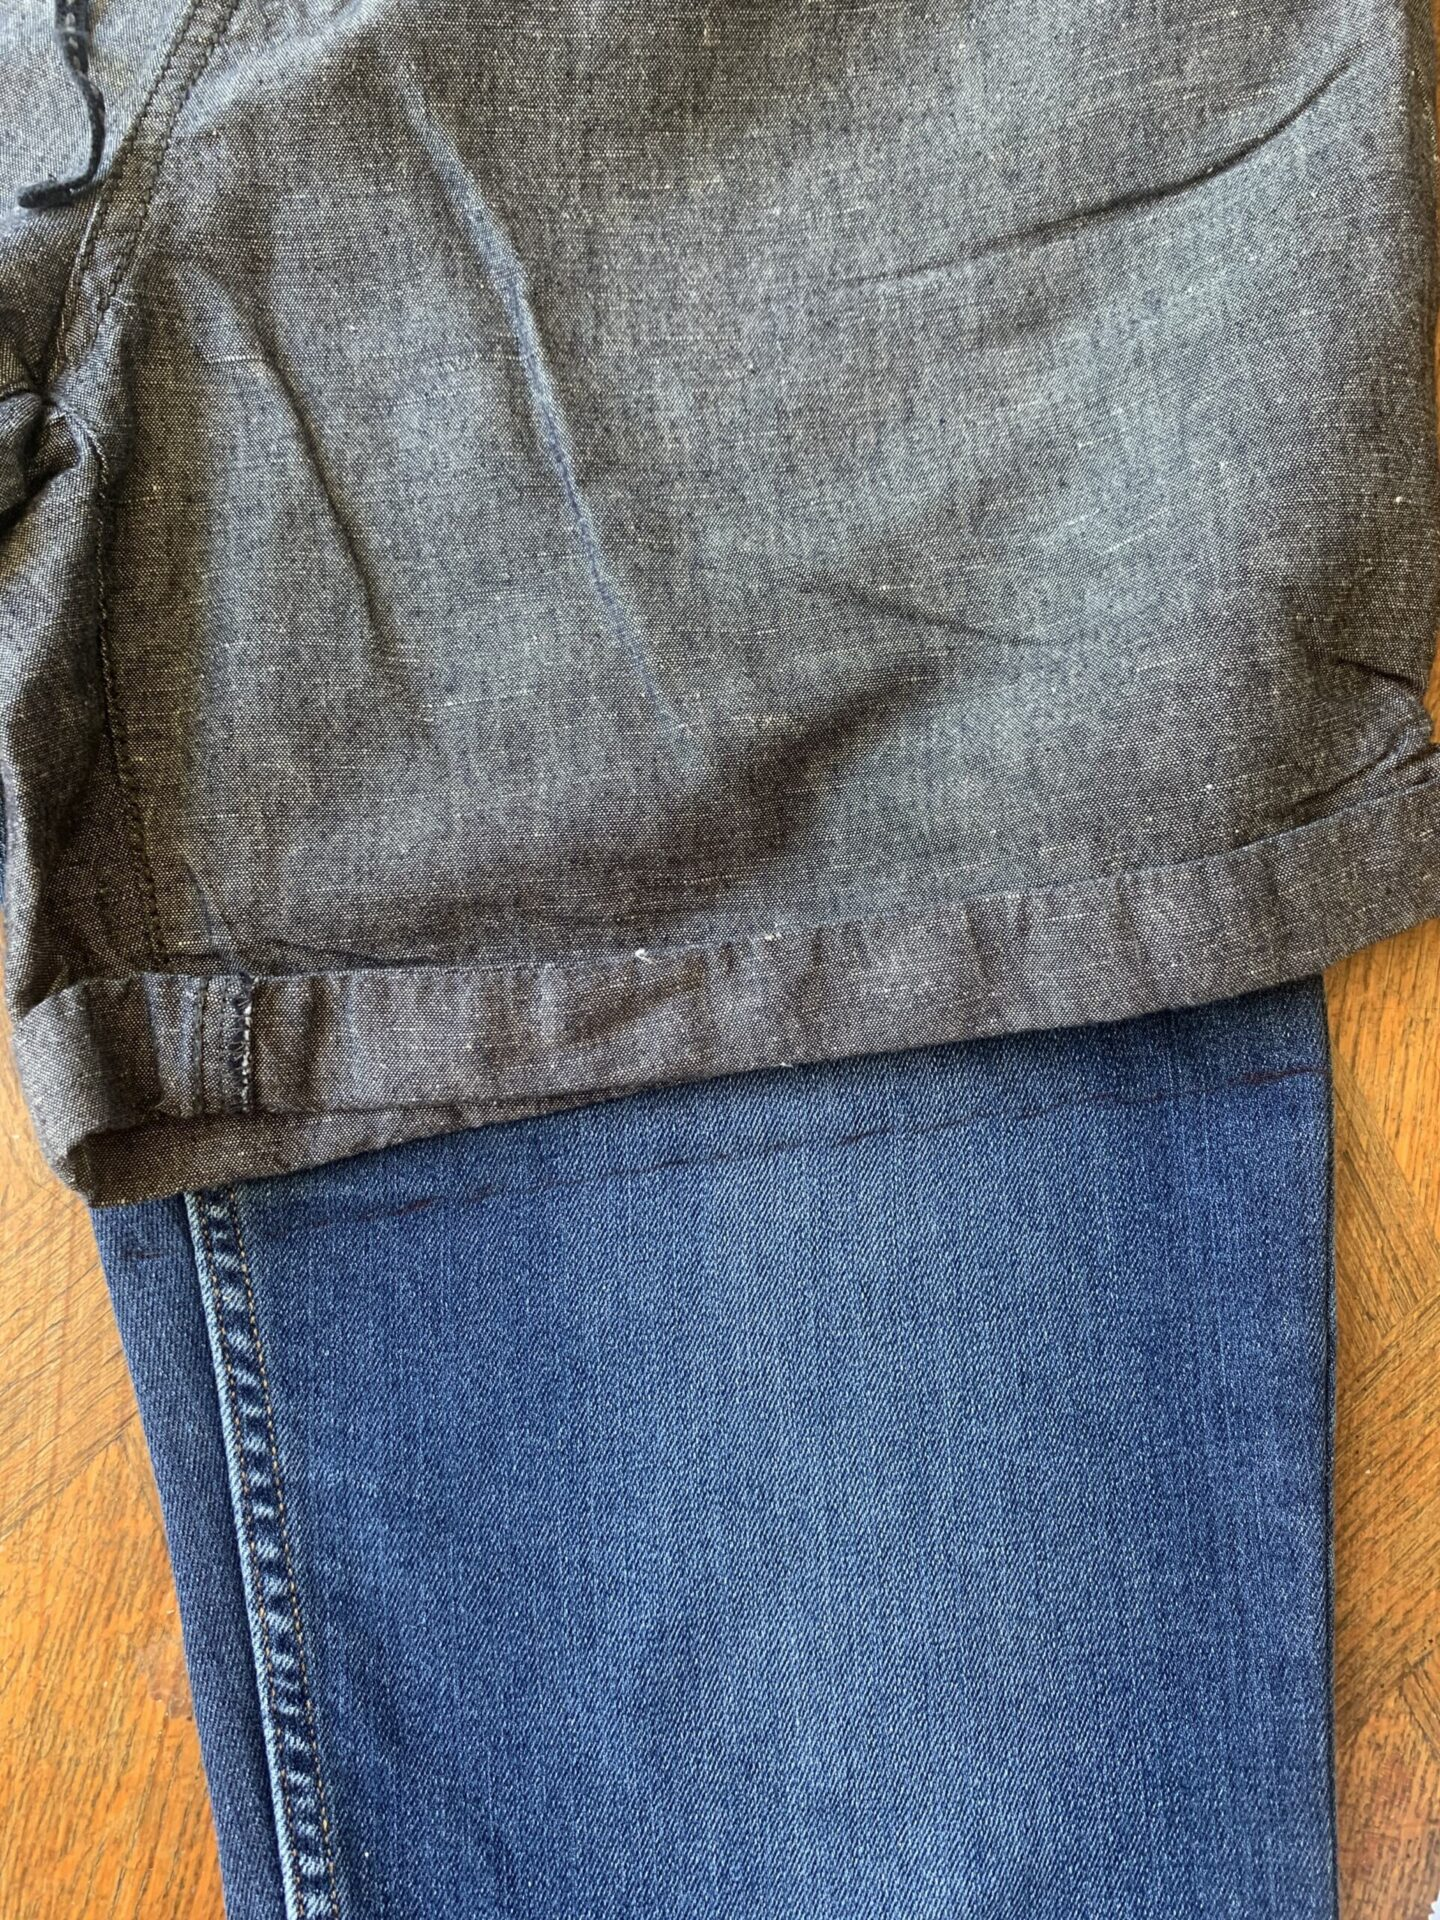 Cutting_jeans_into_shorts